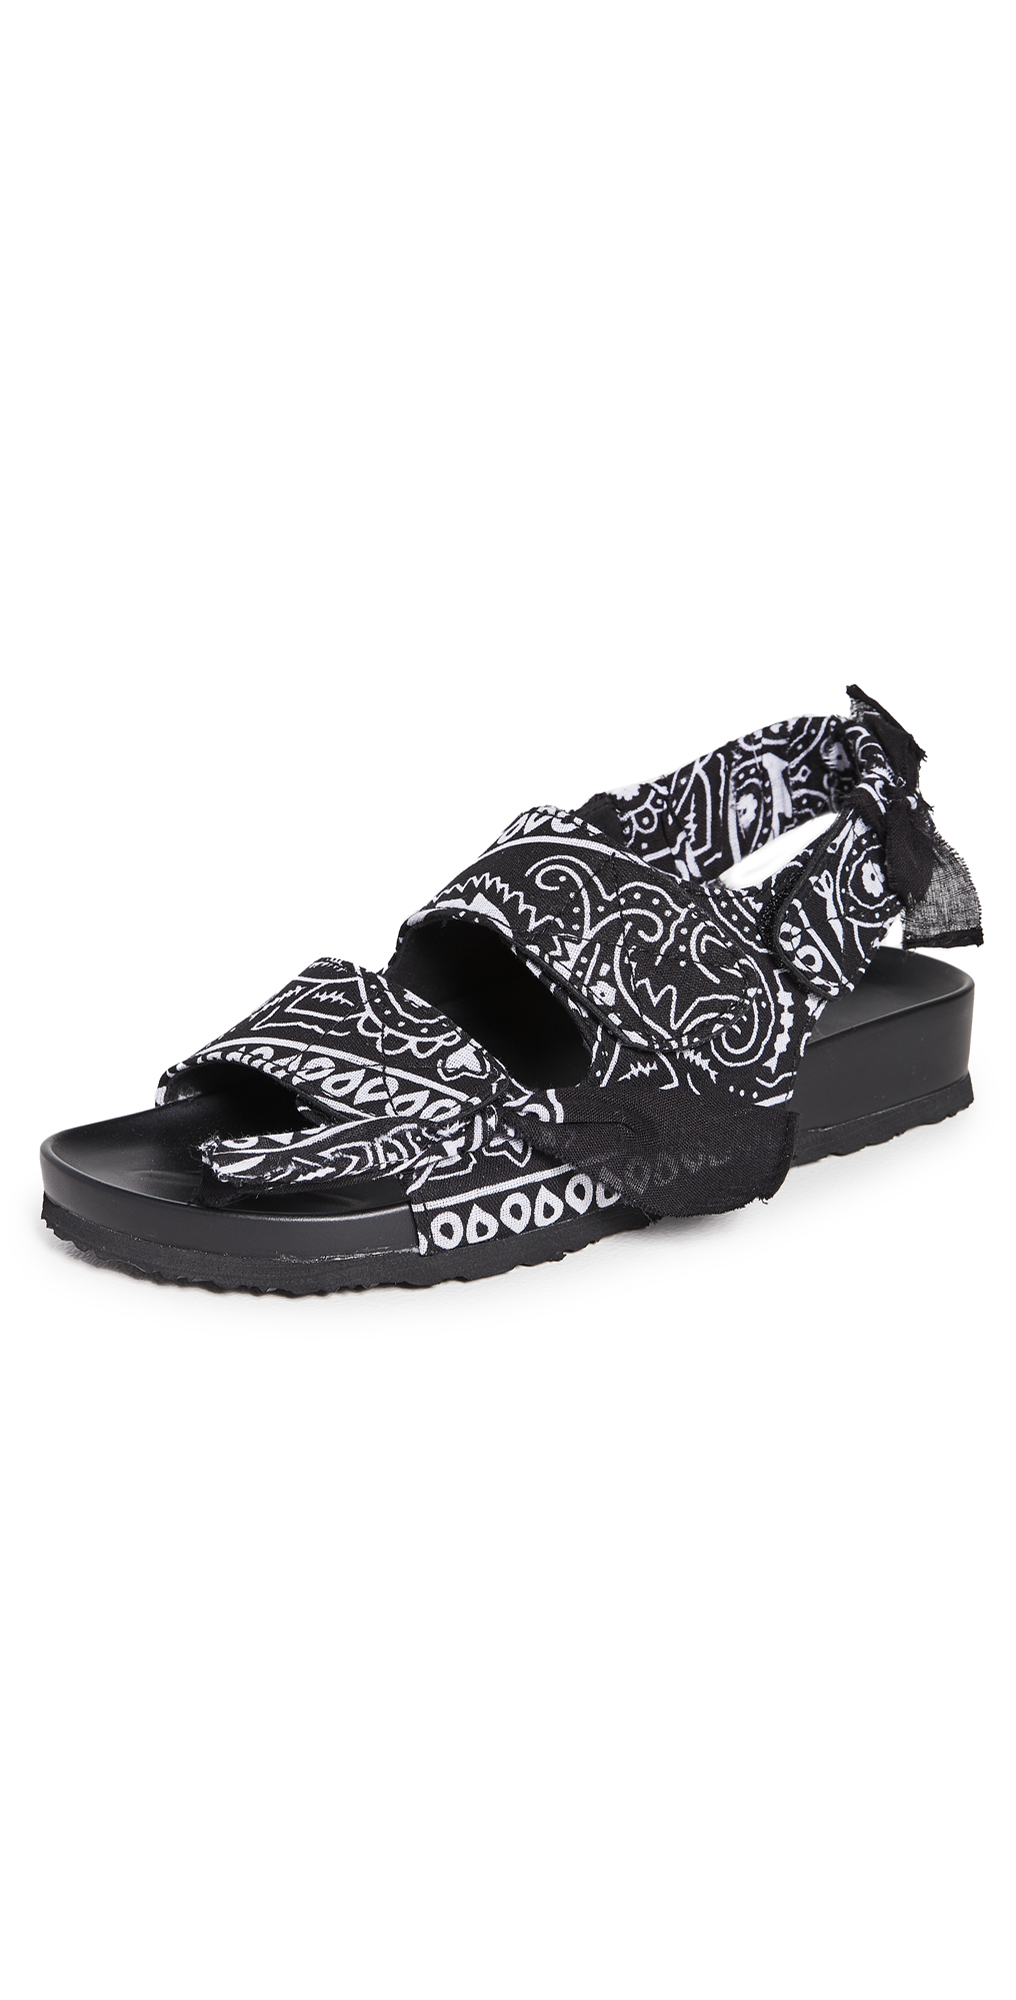 Arizona Love Bandana Sandals